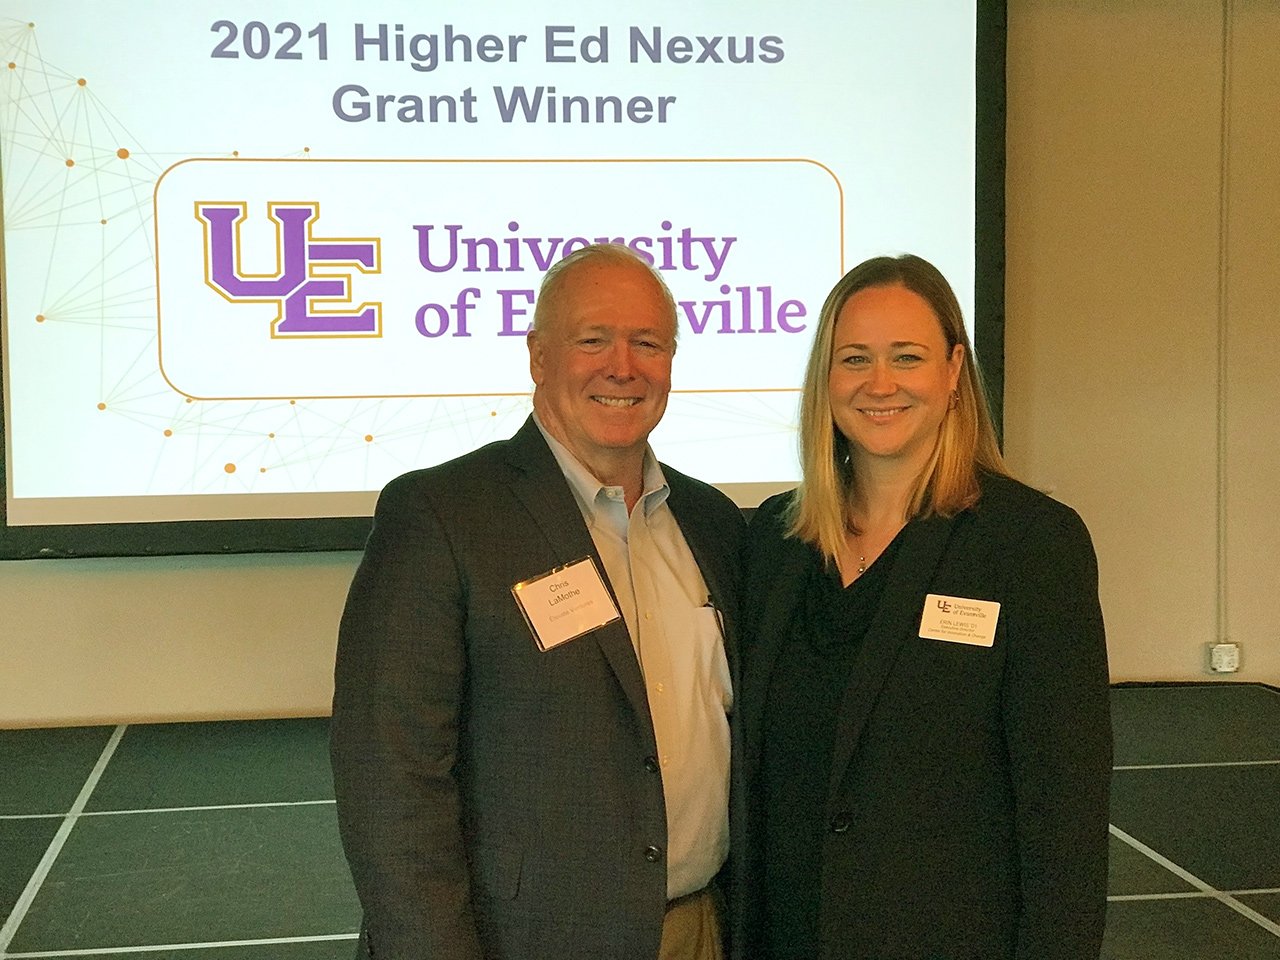 Erin Lewis is pictured with Chris LaMothe, CEO of Elevate Ventures.